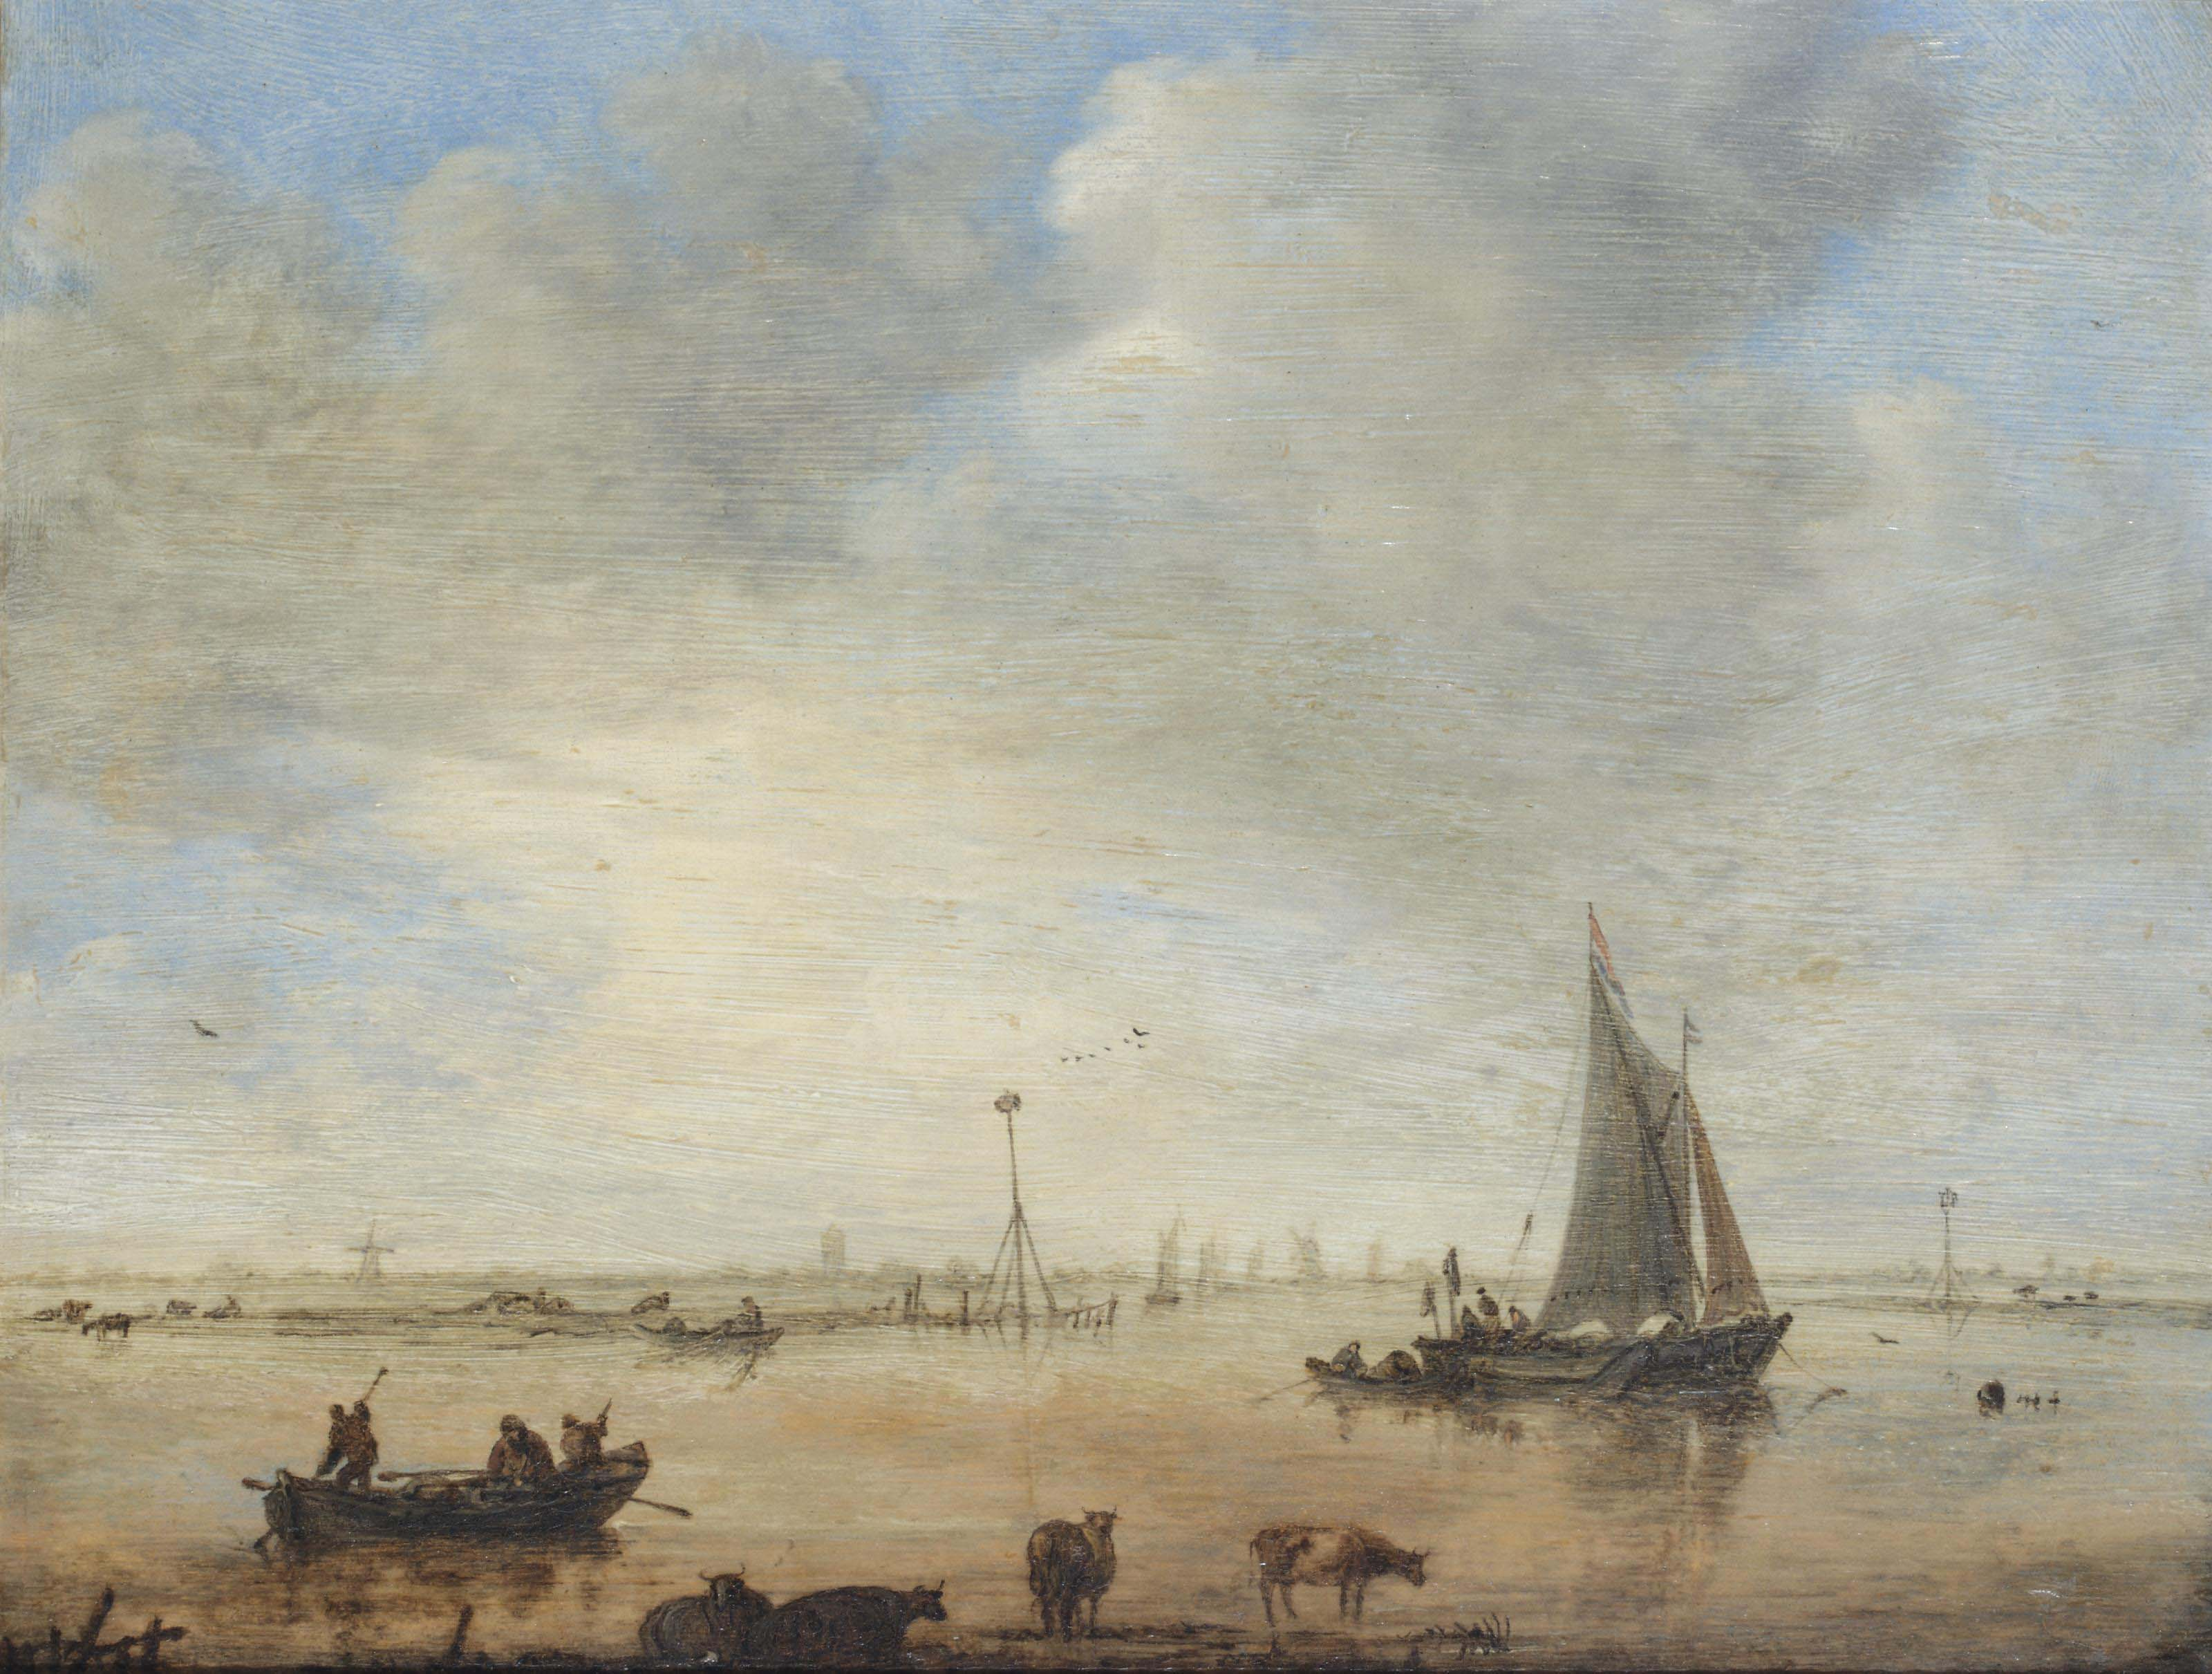 An extensive river landscape with fishing vessels, and cows in the foreground